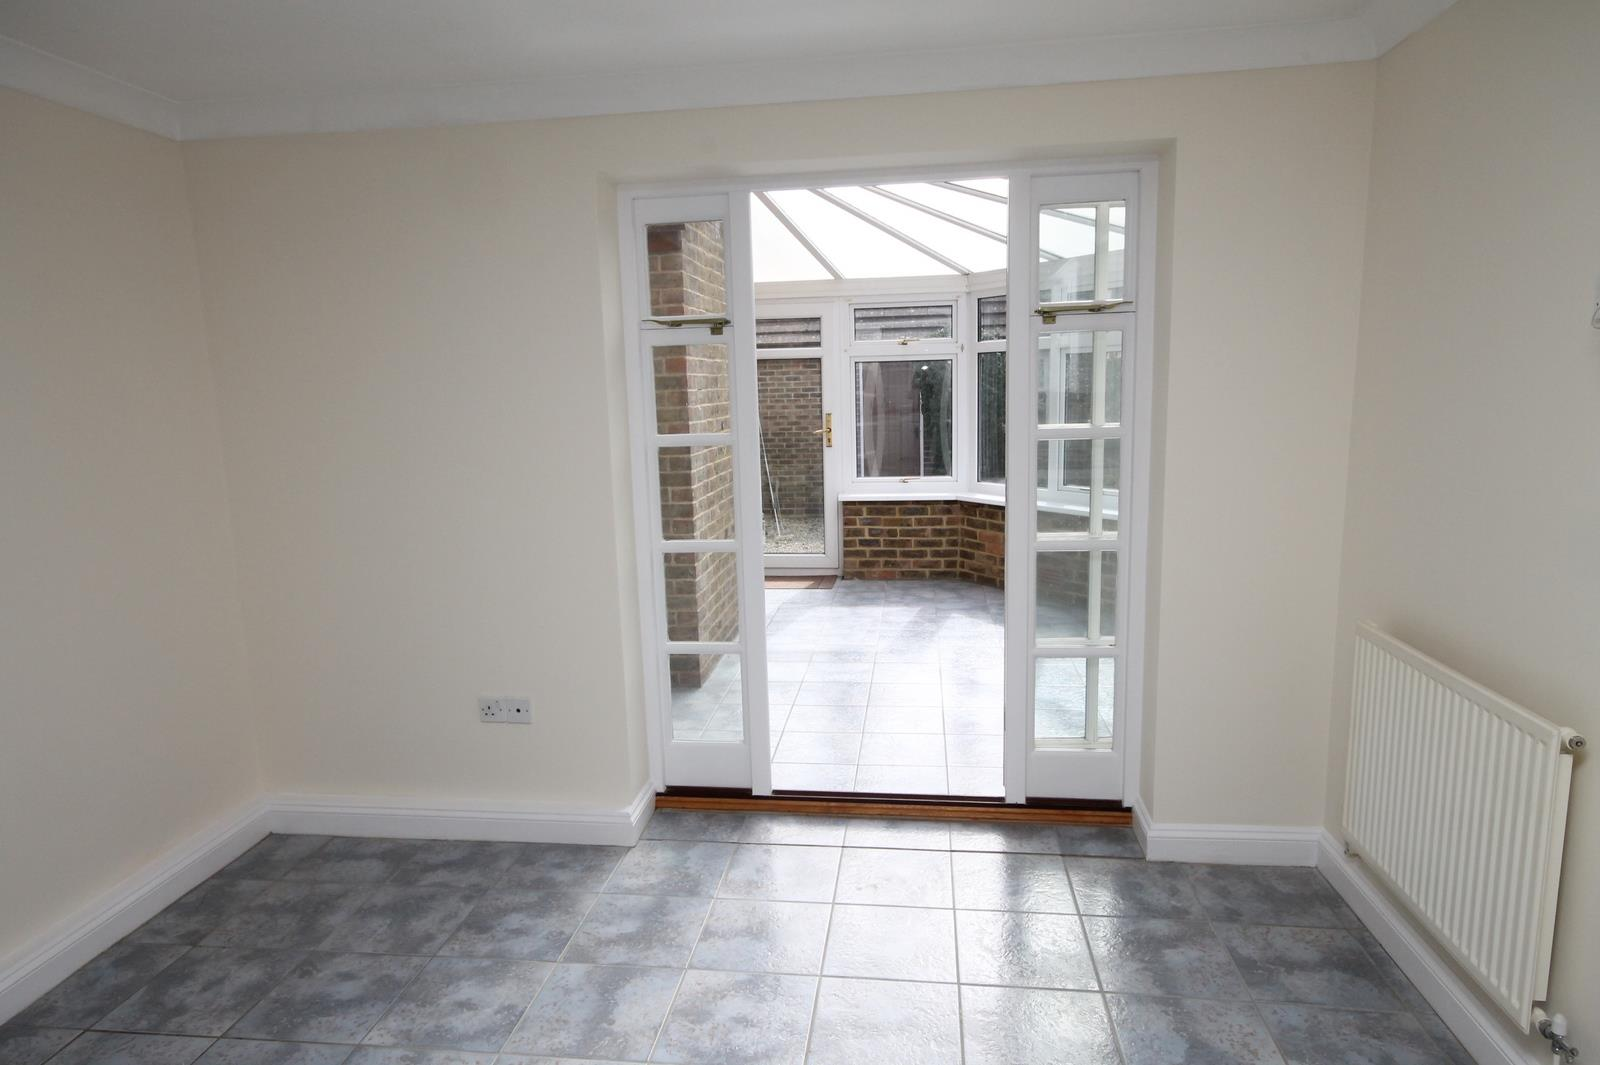 4 bed house to rent in Reedley Road, Bristol  - Property Image 5